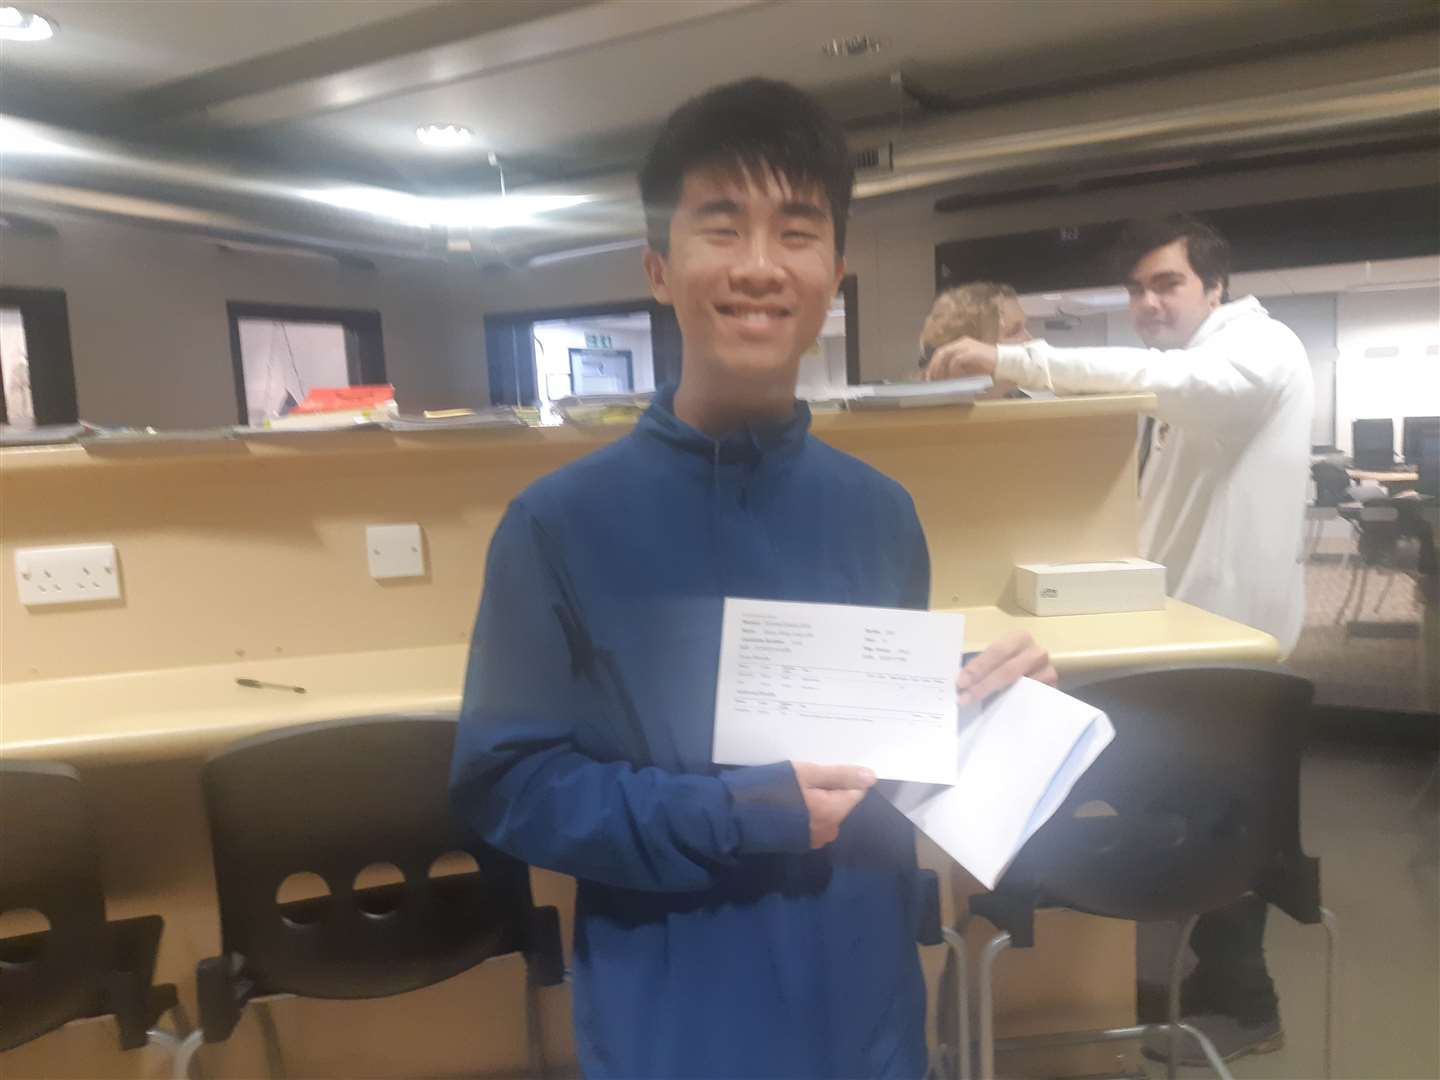 Eason Lam, from Thomas Aveling, who is going to study chemical engineering at Bath after his A-level results (15276152)